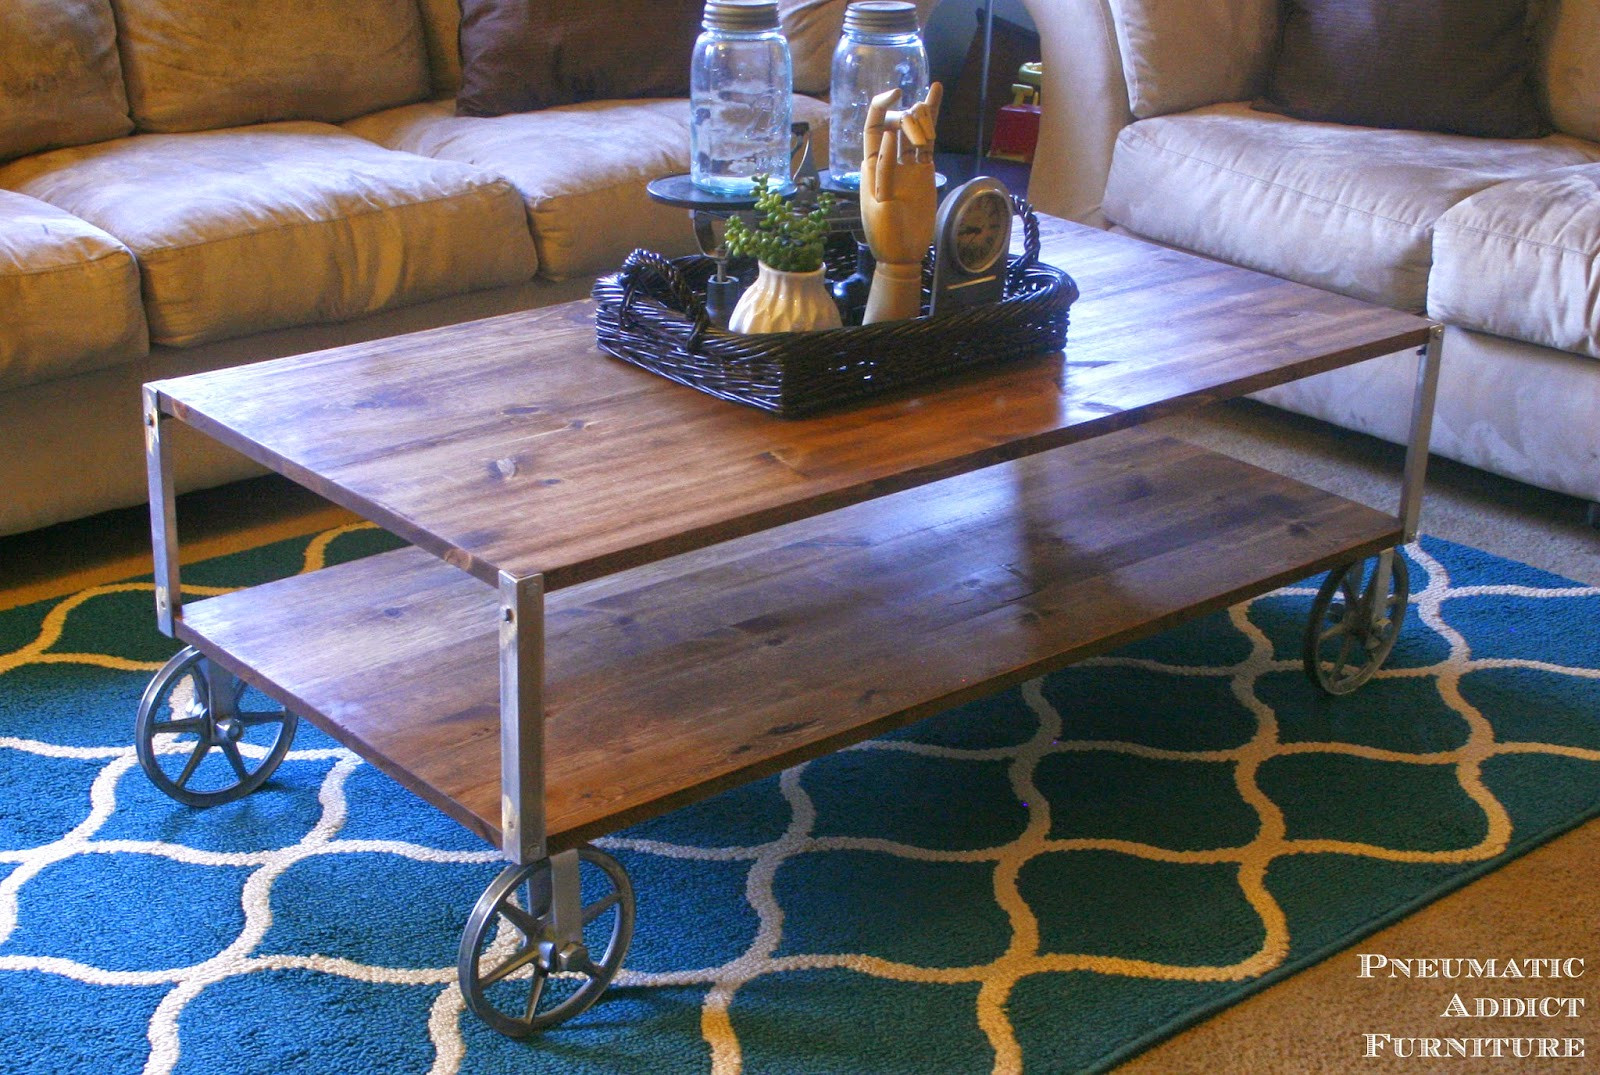 Best ideas about DIY Industrial Coffee Table . Save or Pin 50 DIY Industrial Decor Ideas Now.